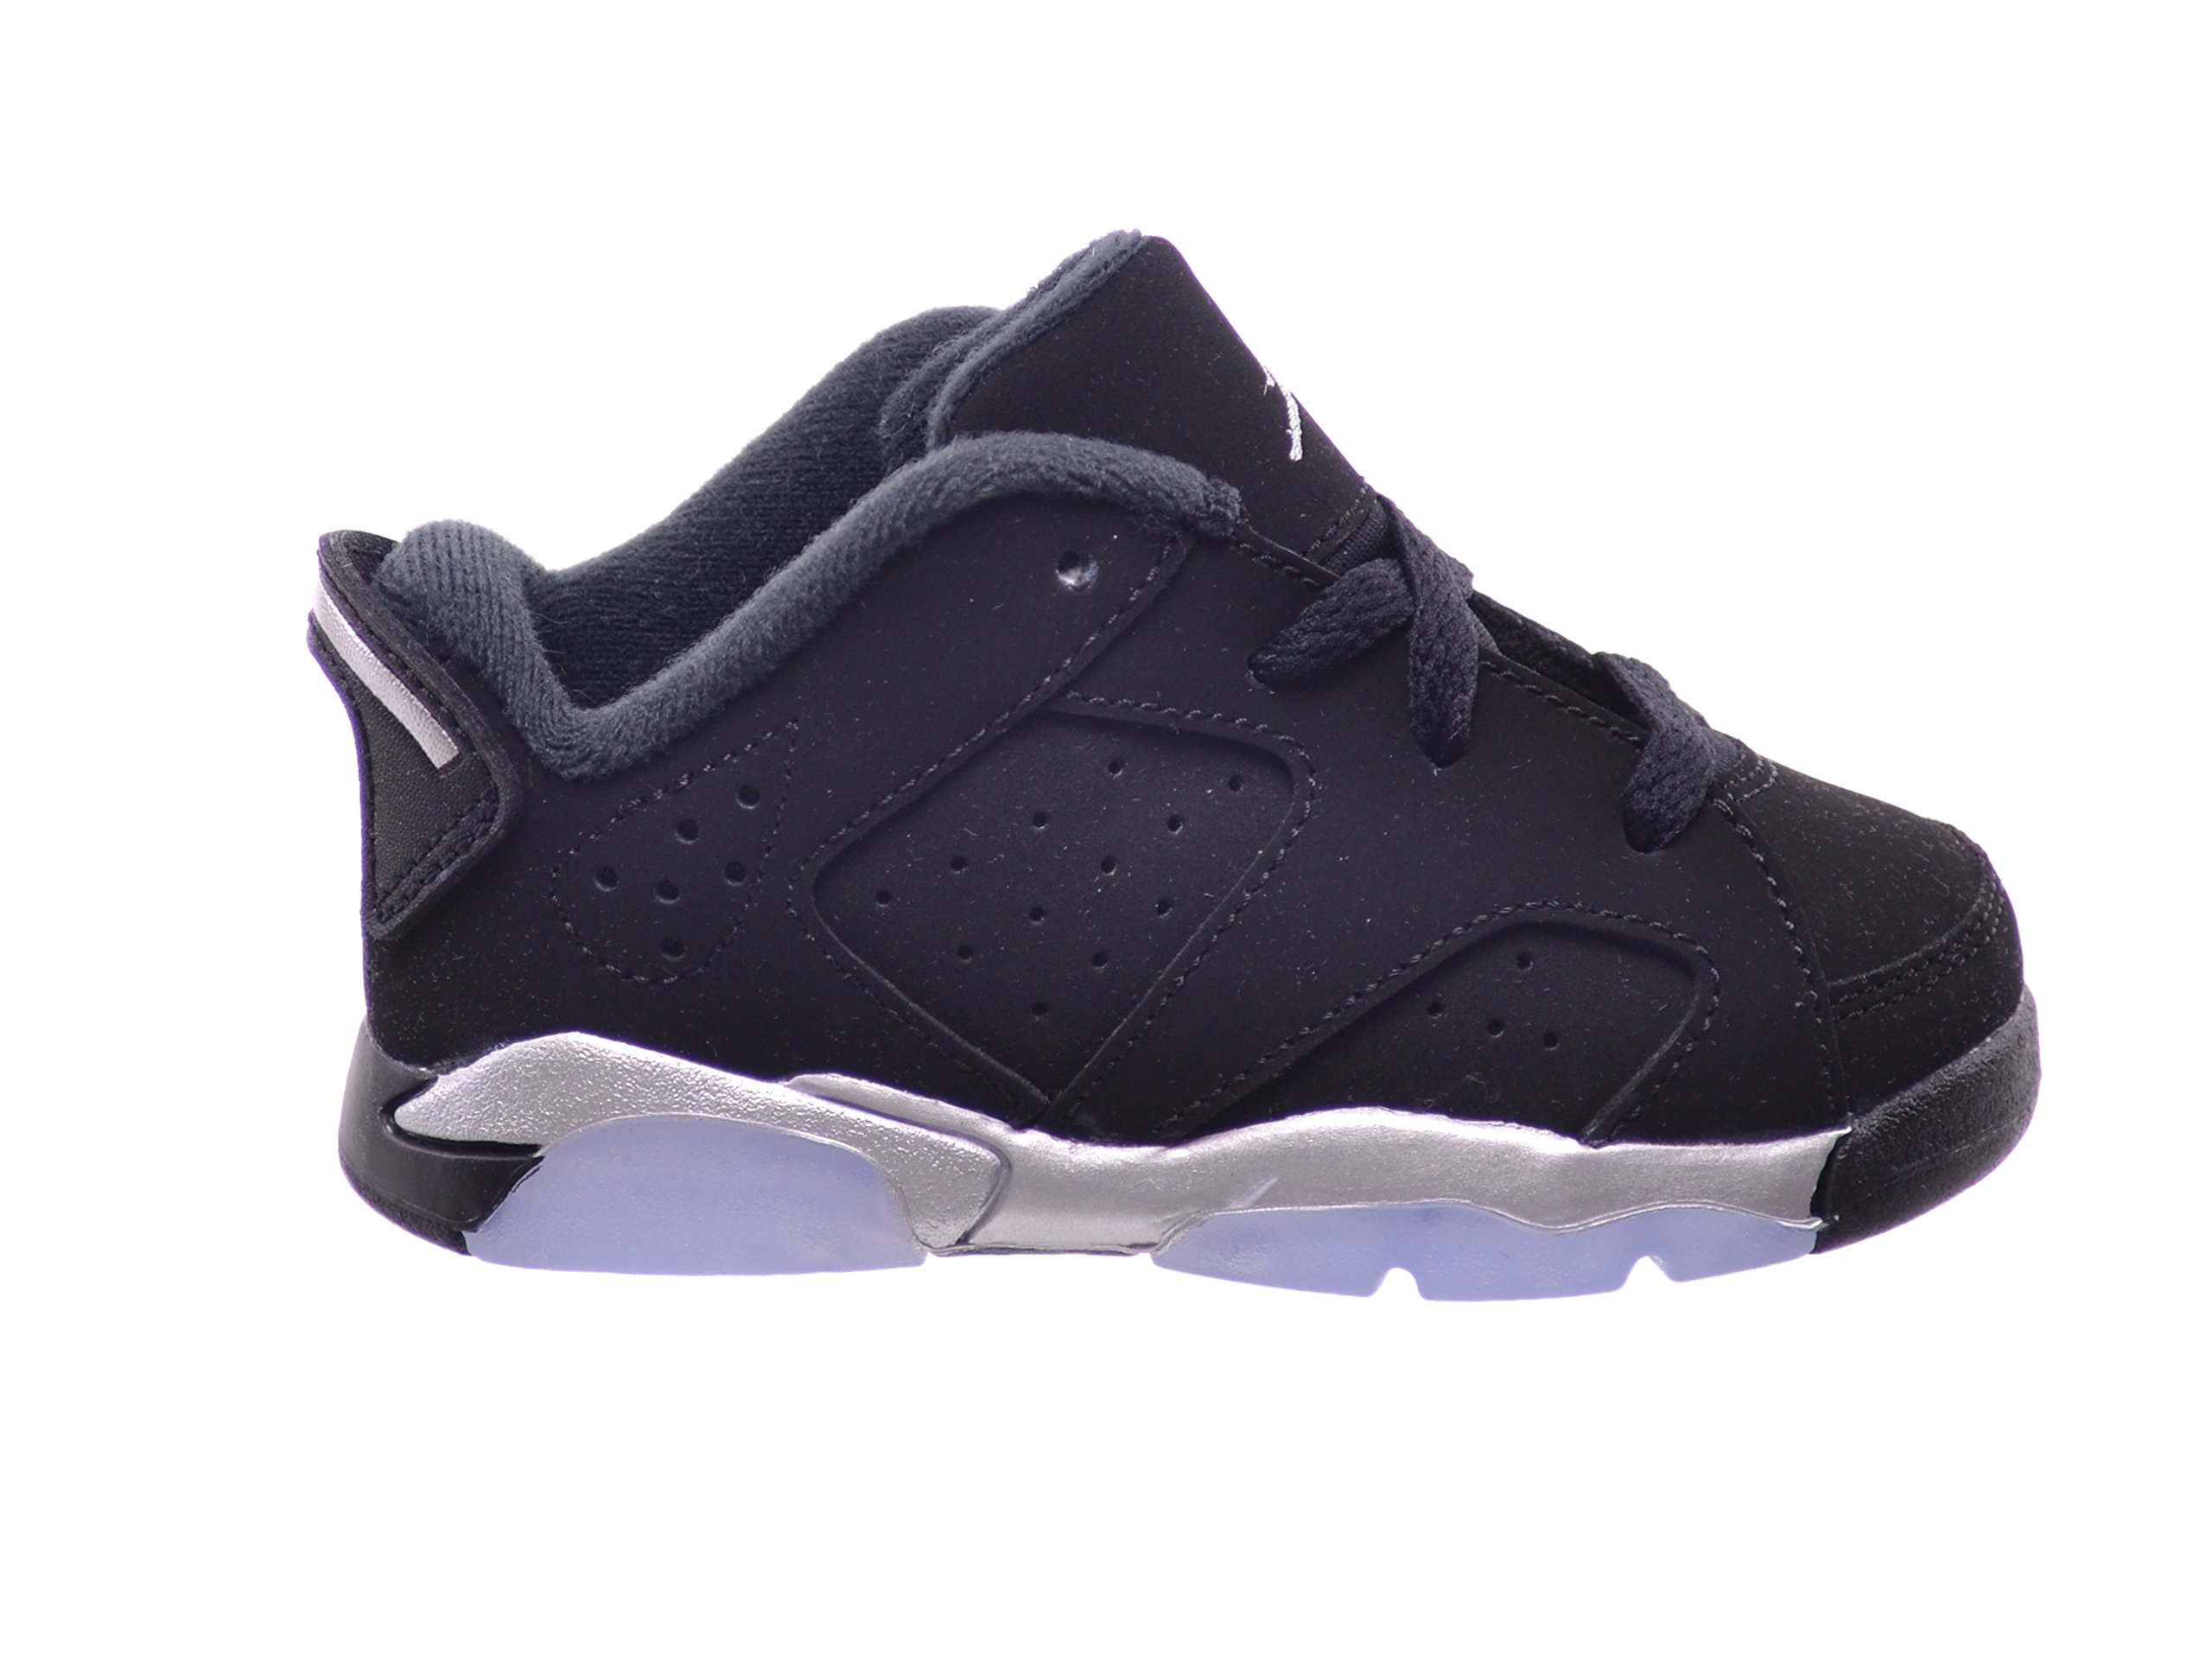 Jordan 6 Retro Low BT Toddlers Baby Infants Shoes Black/Metallic Silver-White 768883-003 (5 M US)